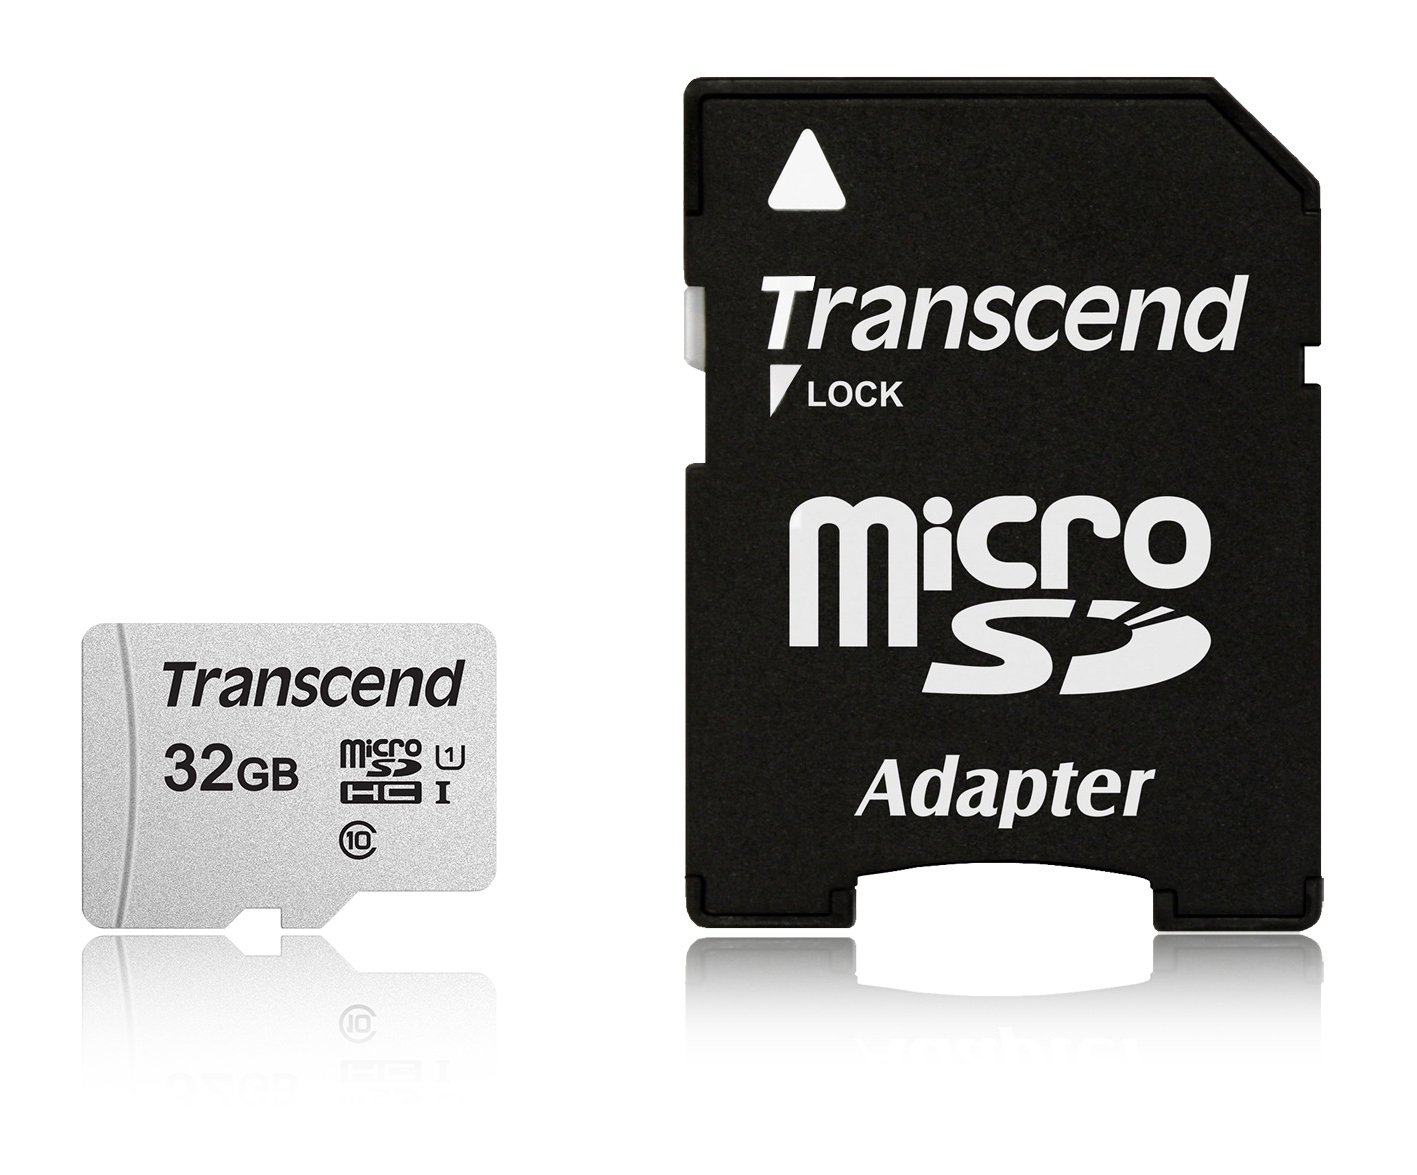 Transcend 32gb Microsdhc Uhs-i Class 10 U1 Memory Card With